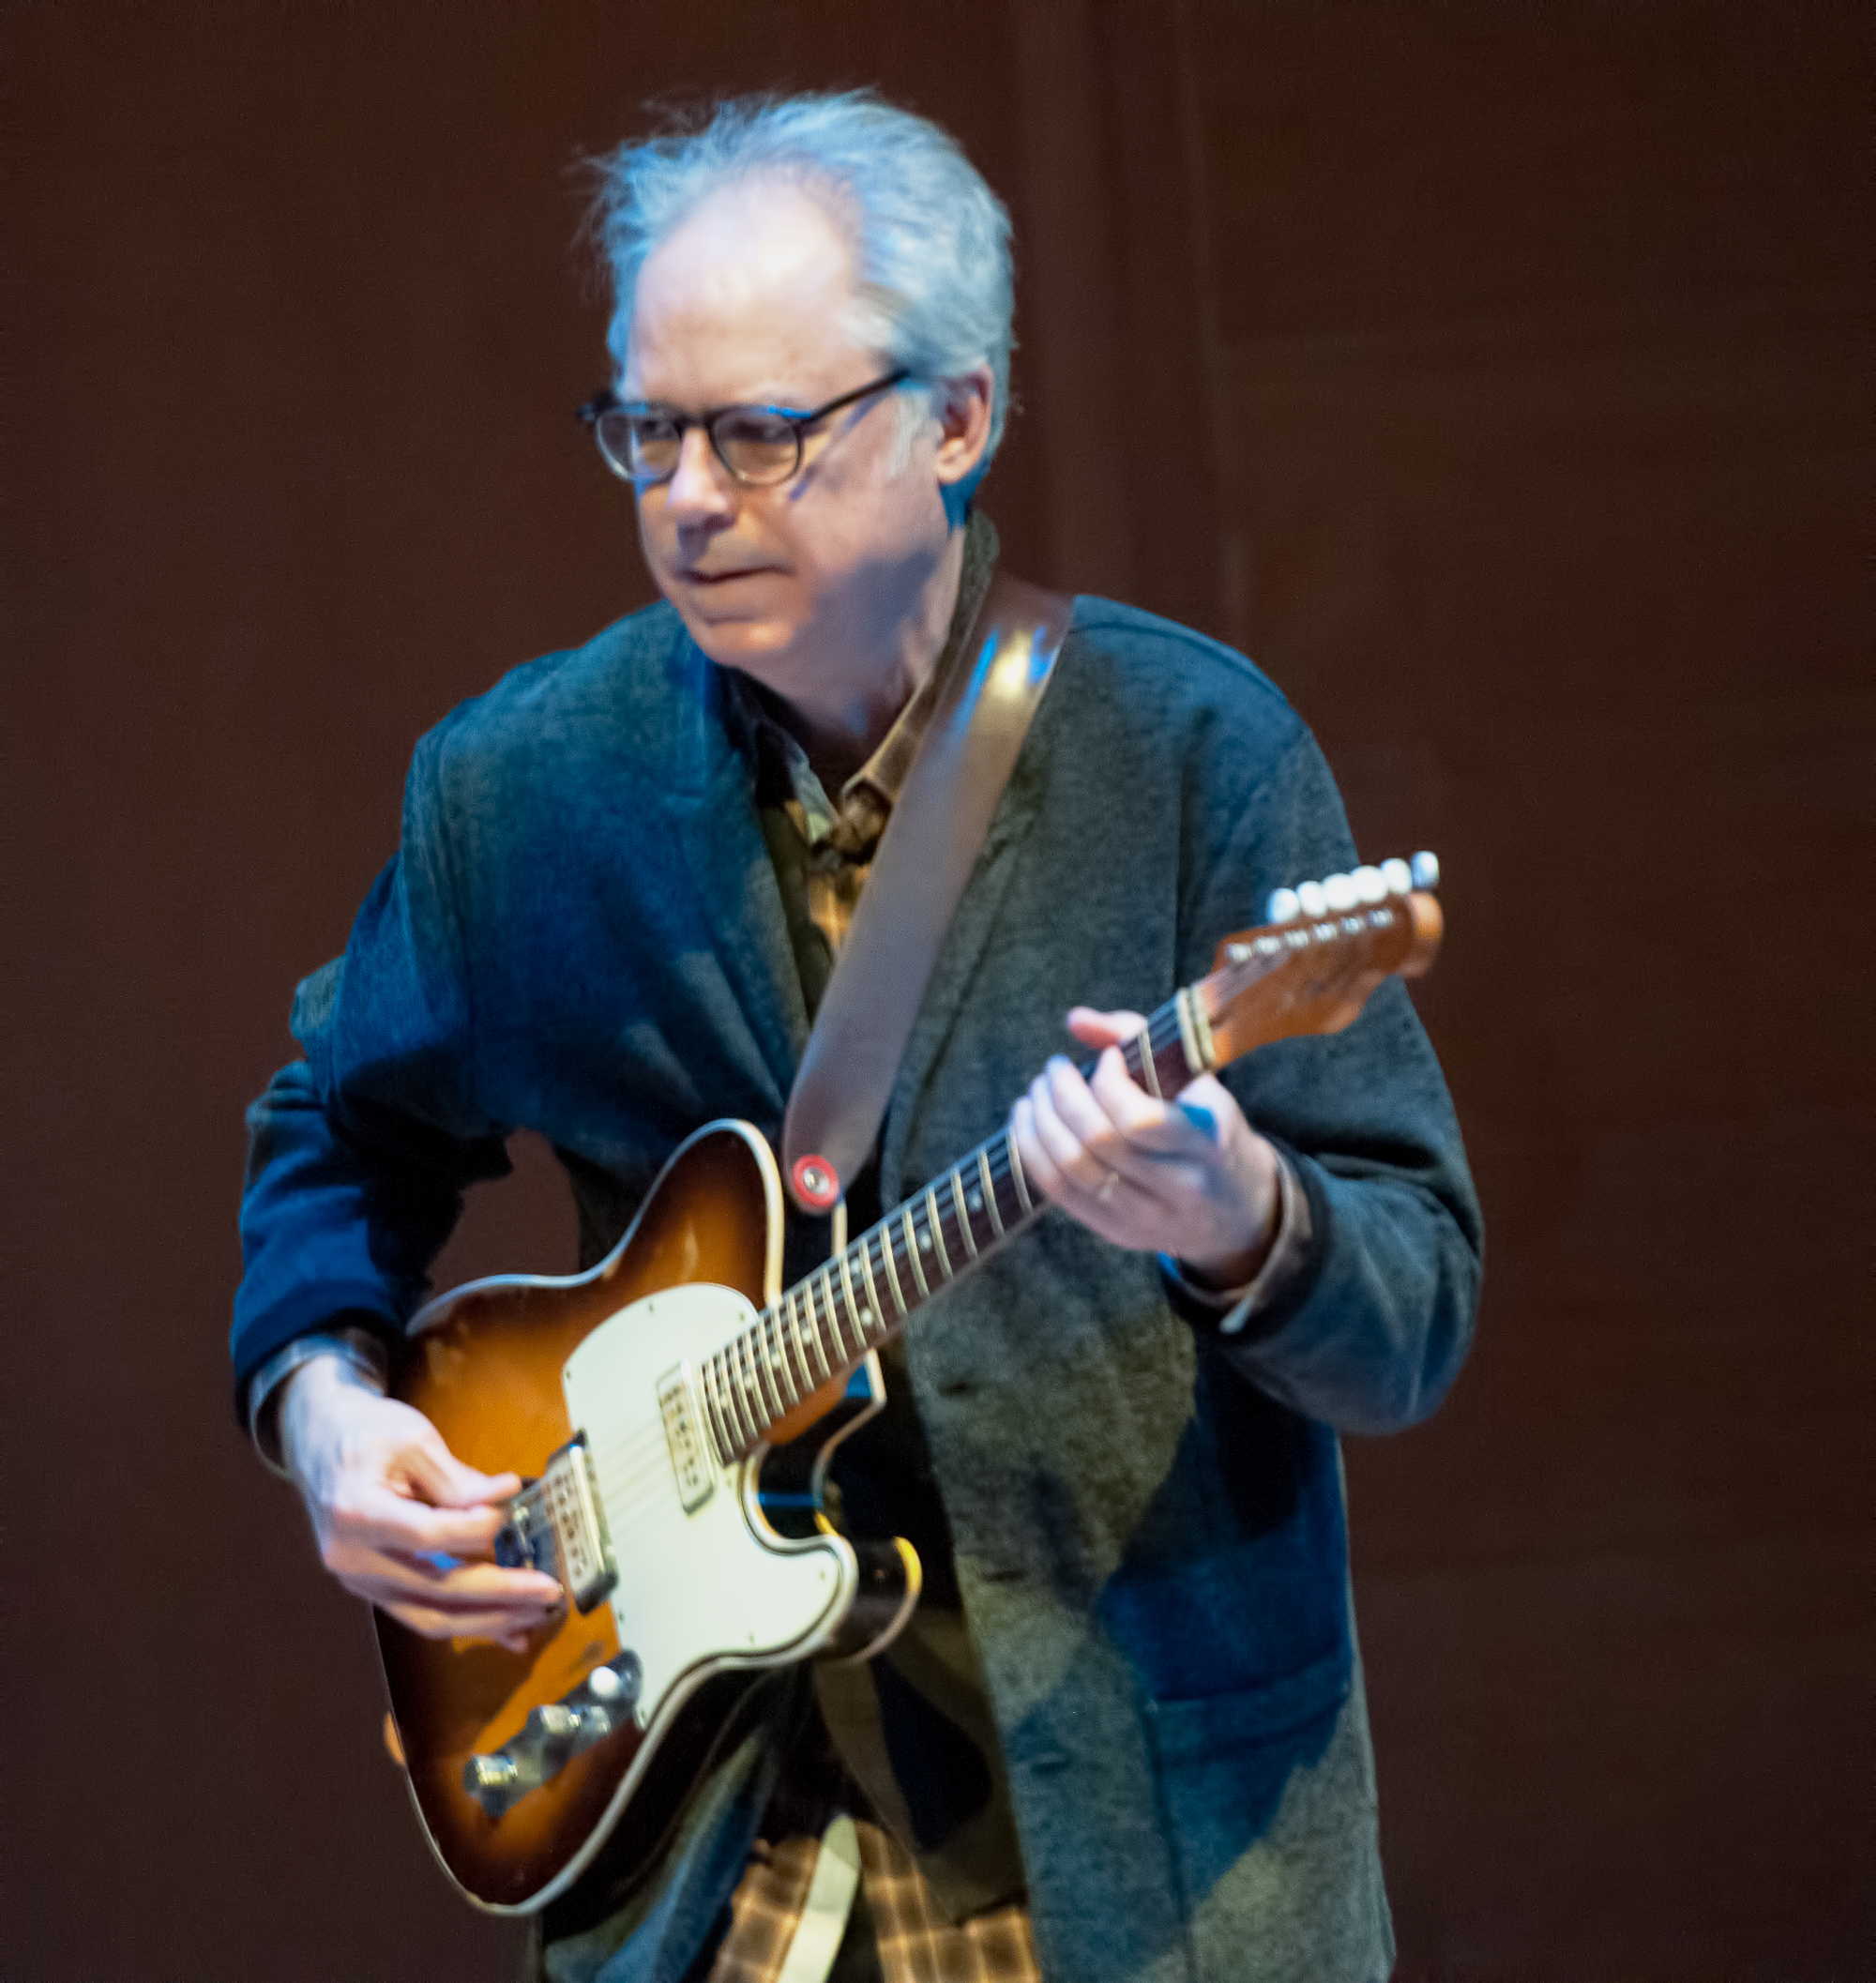 Bill Frisell With Quartet At The Musical Instruments Museum (mim) In Phoenix